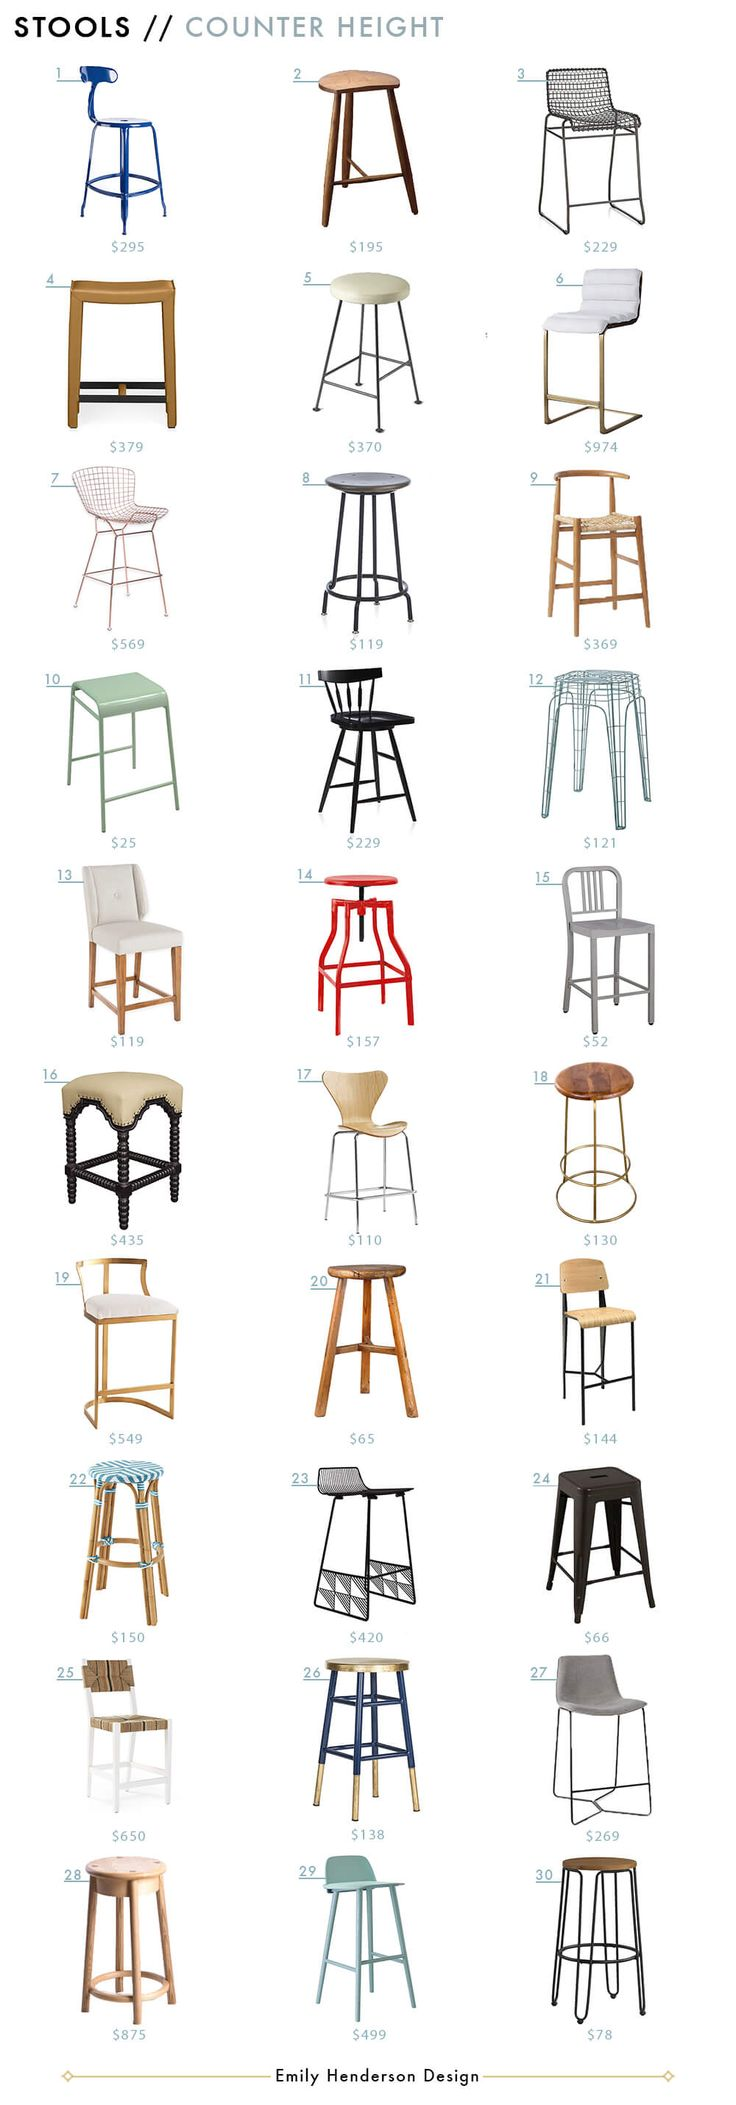 Best Counter height bar stools ideas on Pinterest